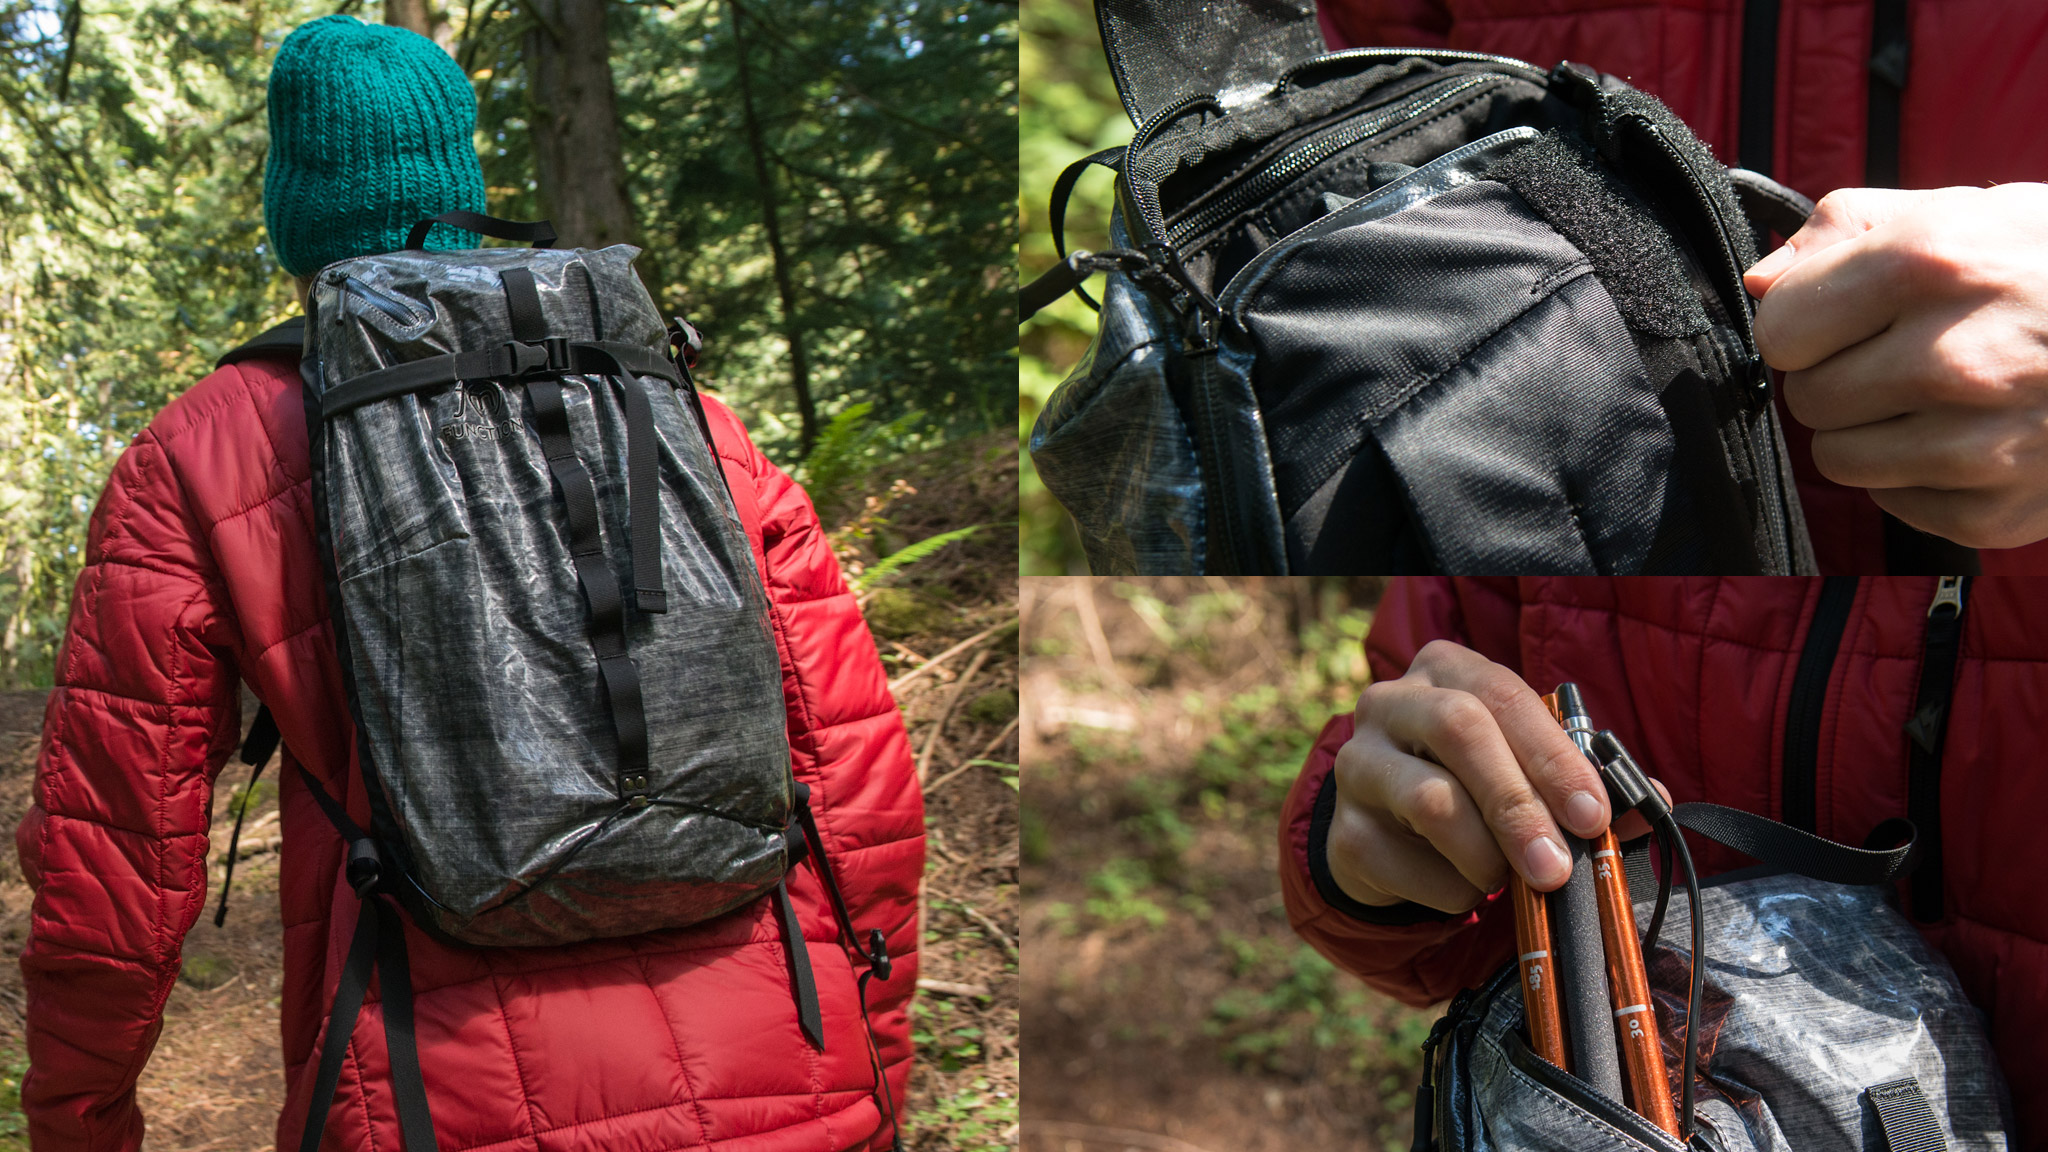 Function: Backcountry Backpack